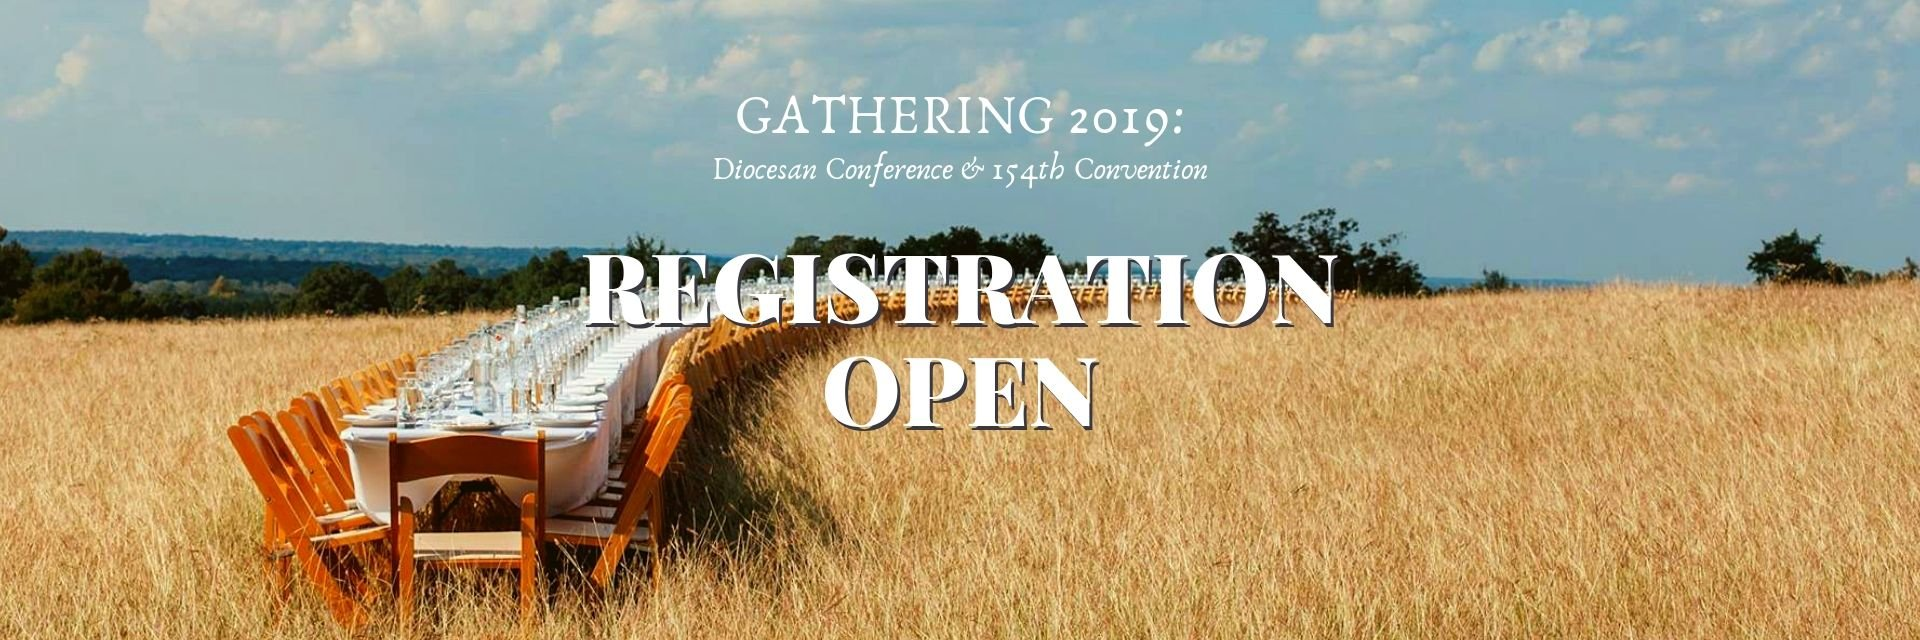 Gathering 2019 no longer strangers